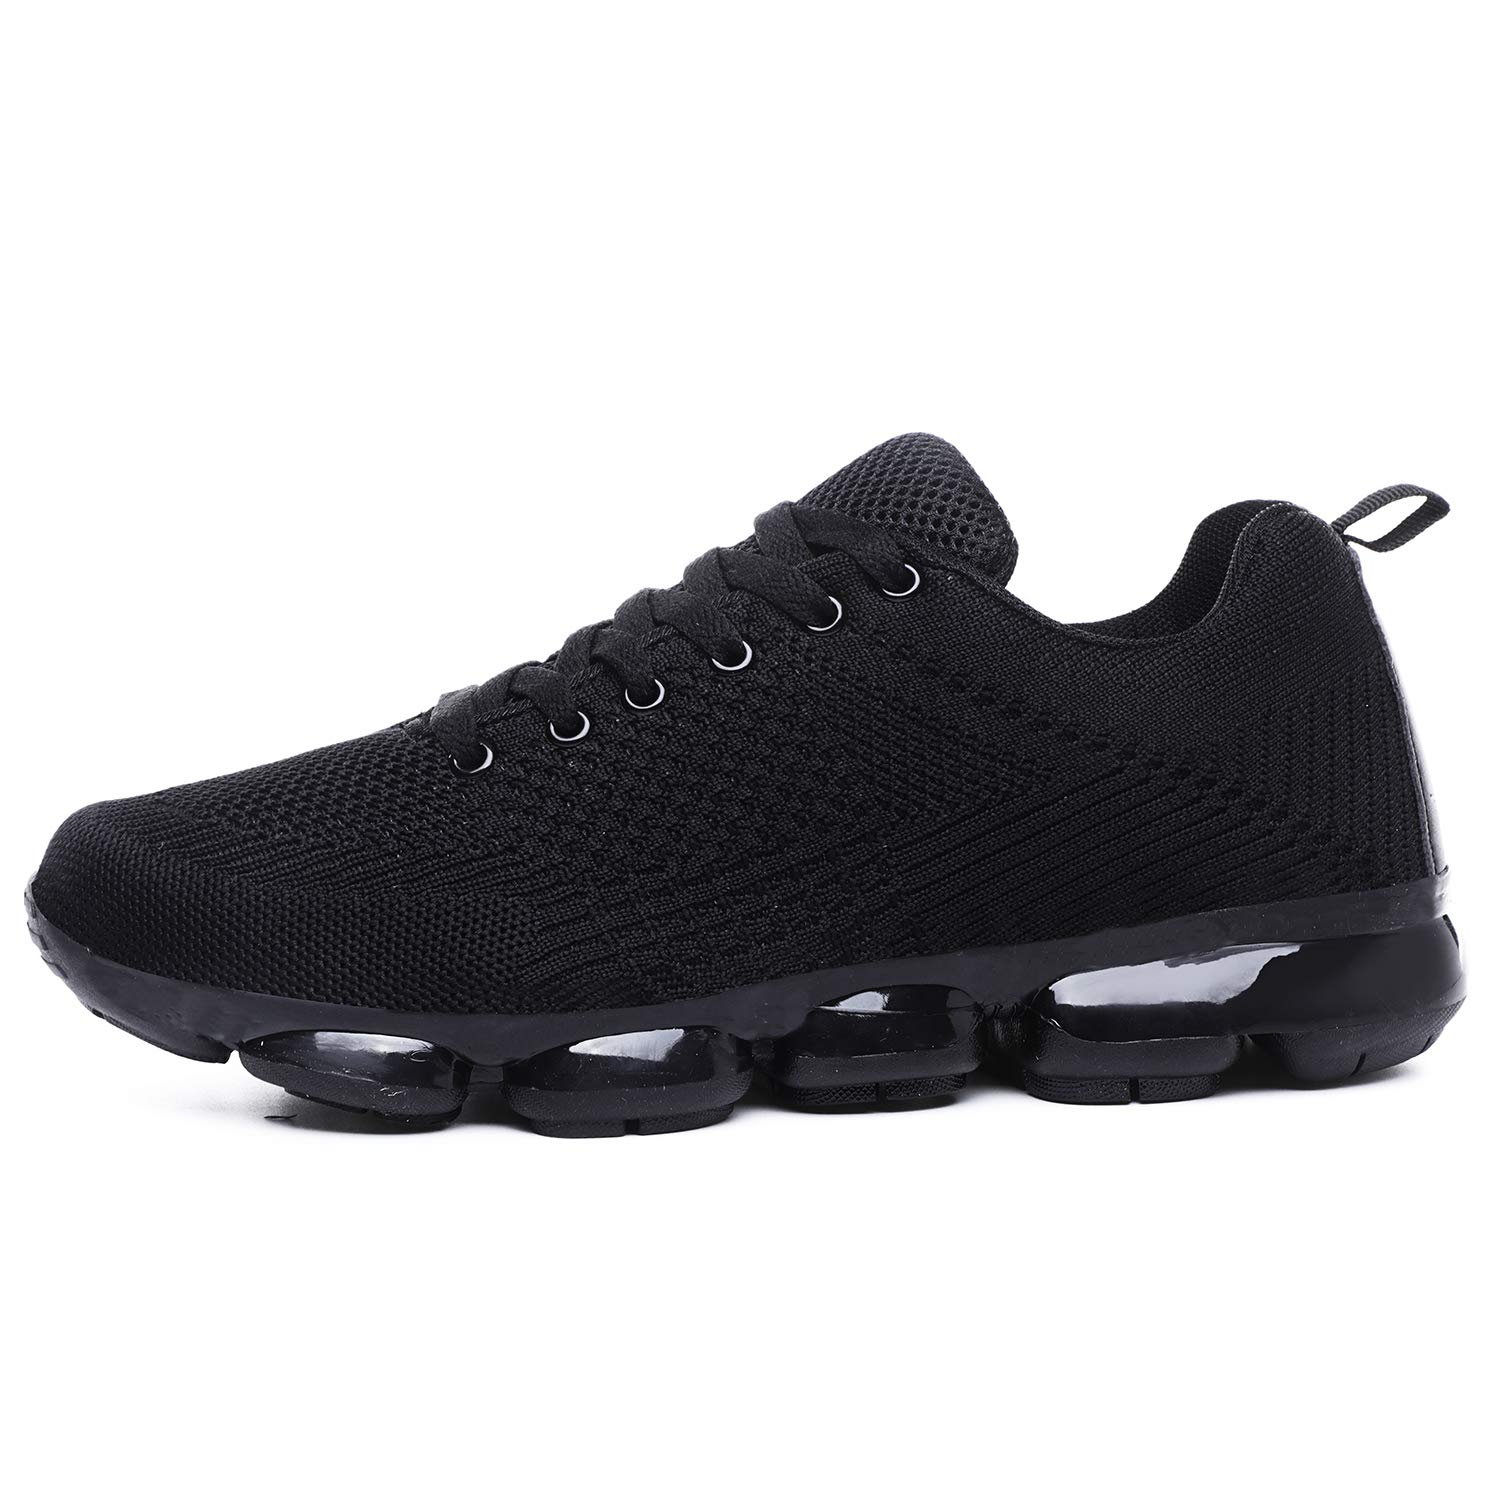 promo code 6bdcb d4b18 Mens Shock Absorbing Air Running Trainers Jogging Gym Fitness Trainer New  Shoes Sizes 7-12 UK